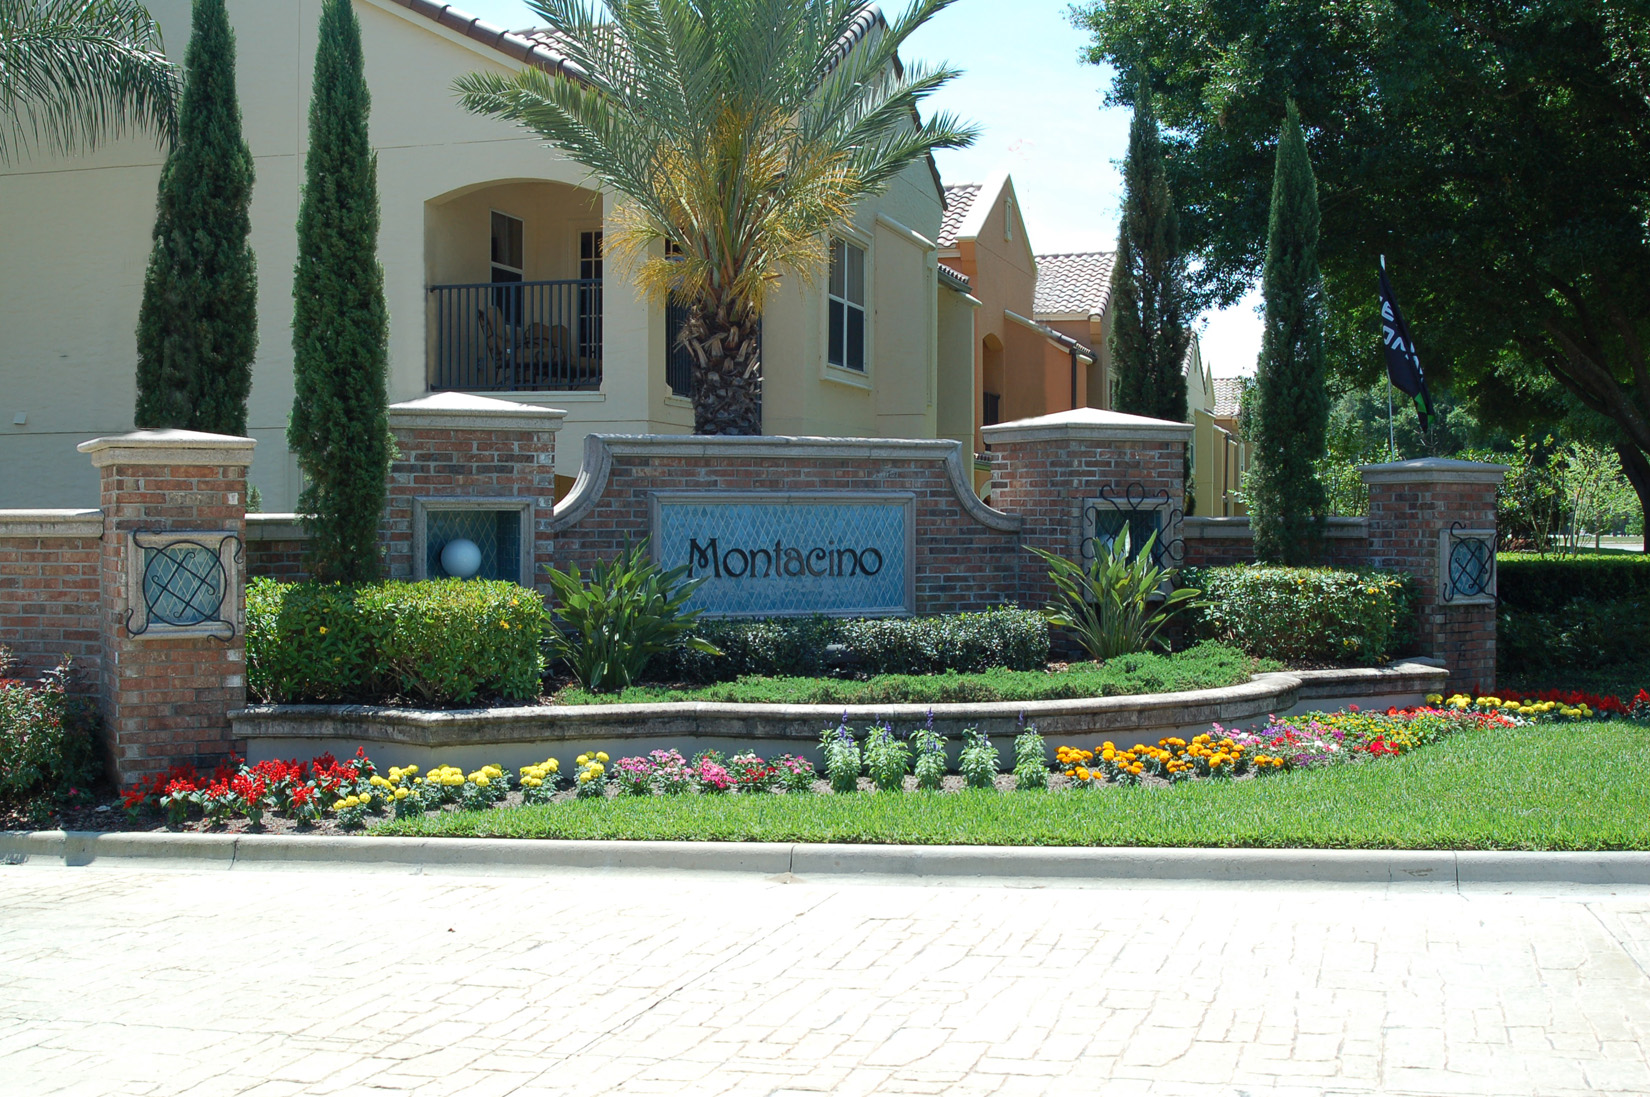 Montacino Sign Daly Design Group